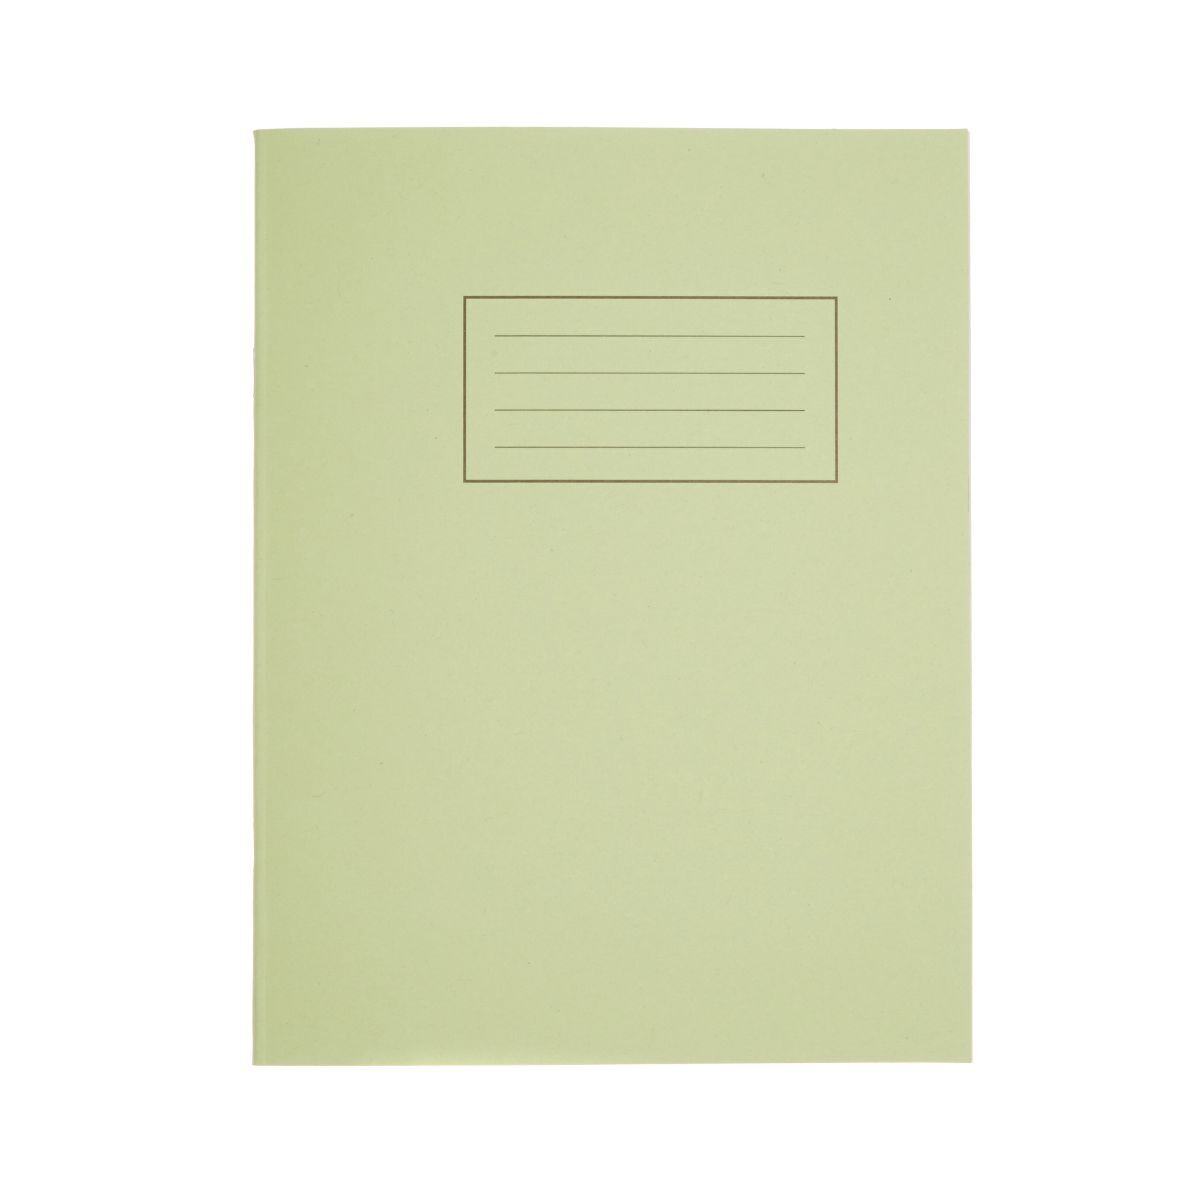 Silvine Exercise Book 9 Inch x 7 Inch 80 Page Ruled 75gsm Green